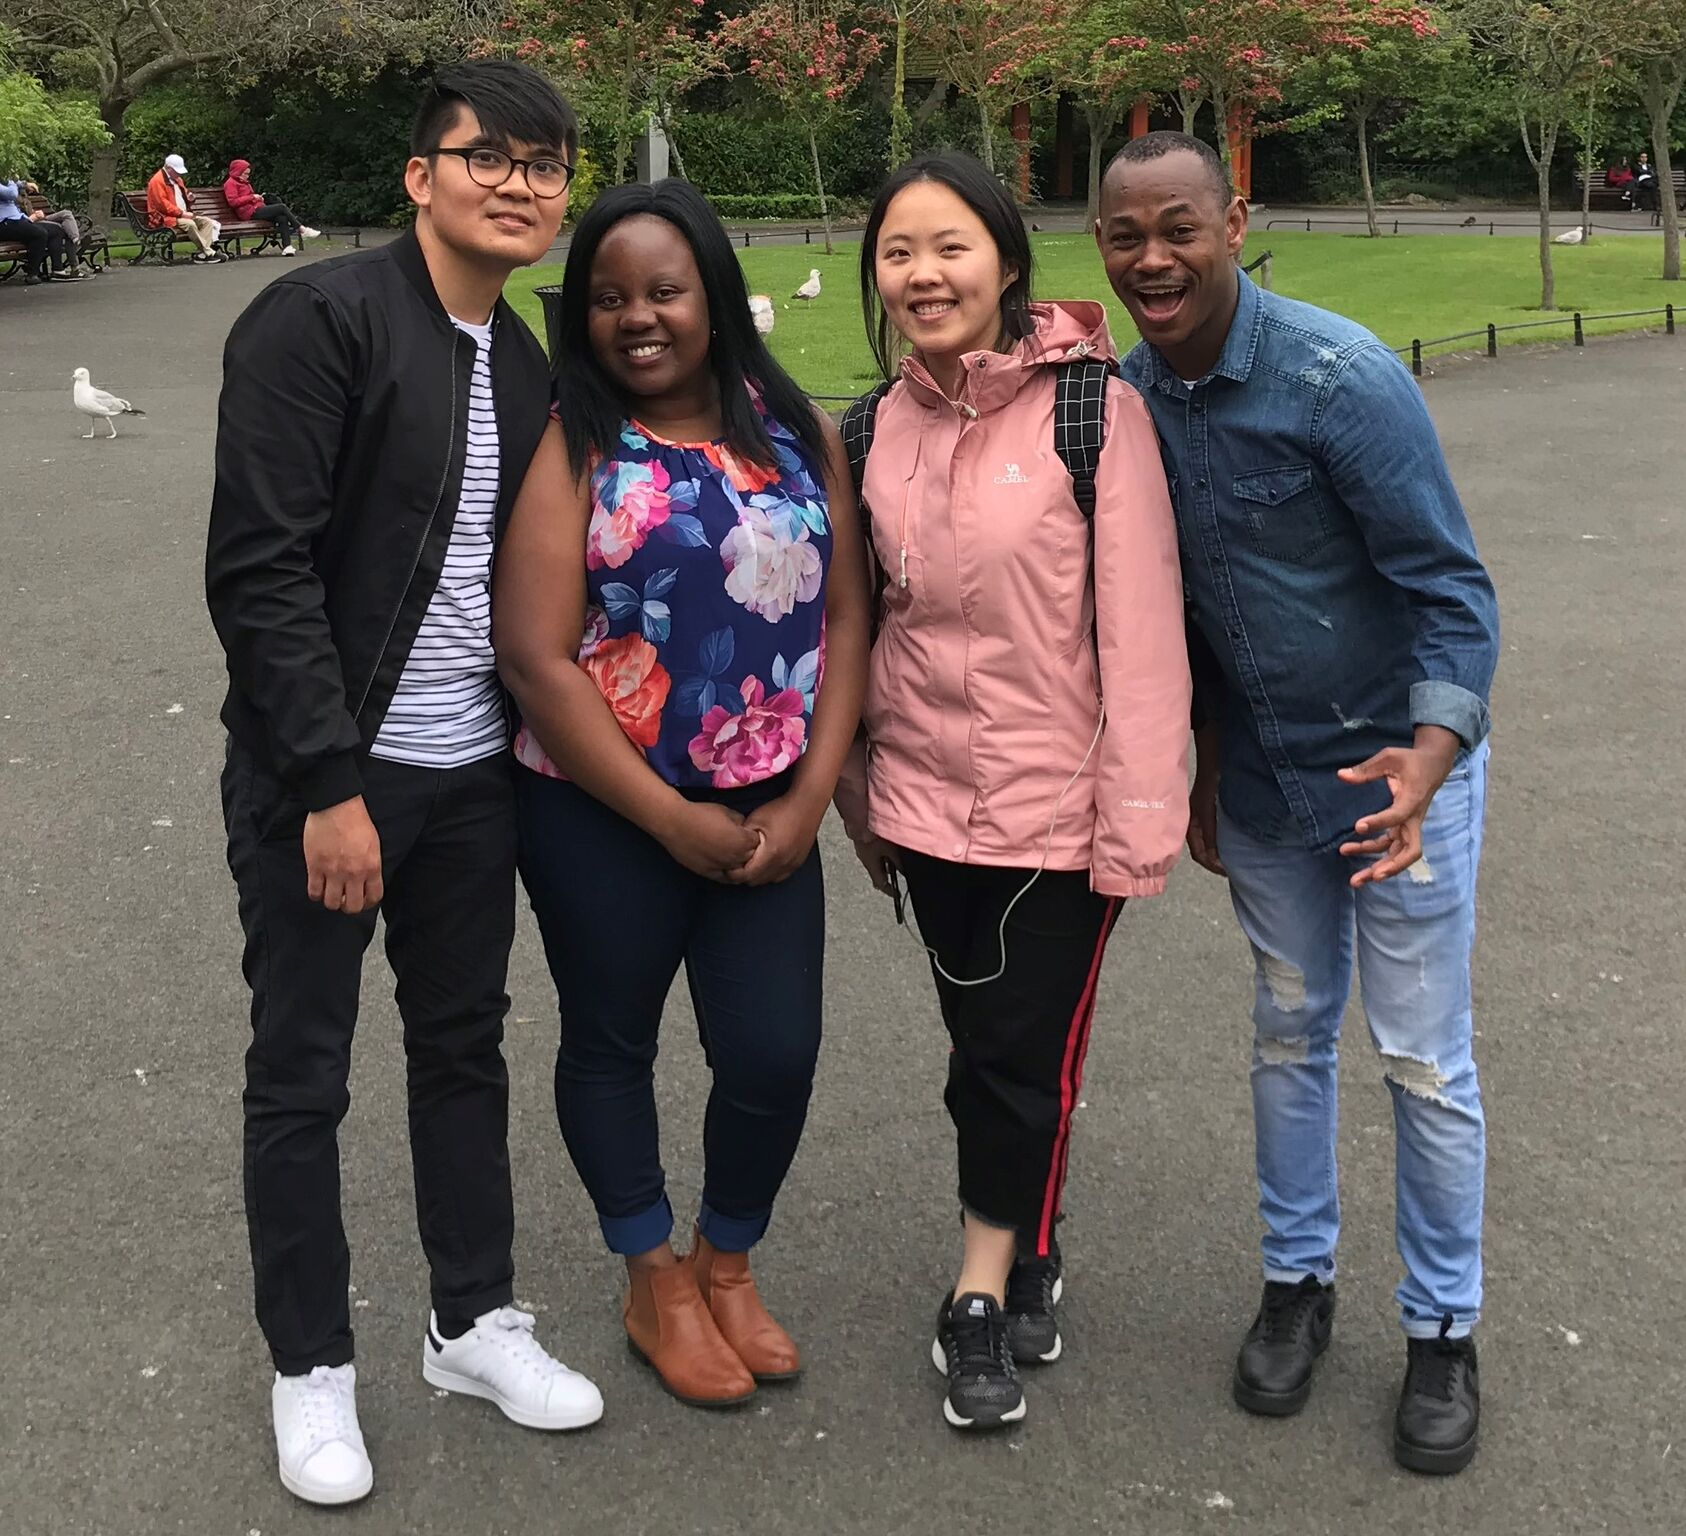 Global Fellows serving in Ireland, 2019.  L-R: Carlos (Philippines), Nyasha (Zimbabwe), Dorcas (East Asia) & Neo (South Africa)